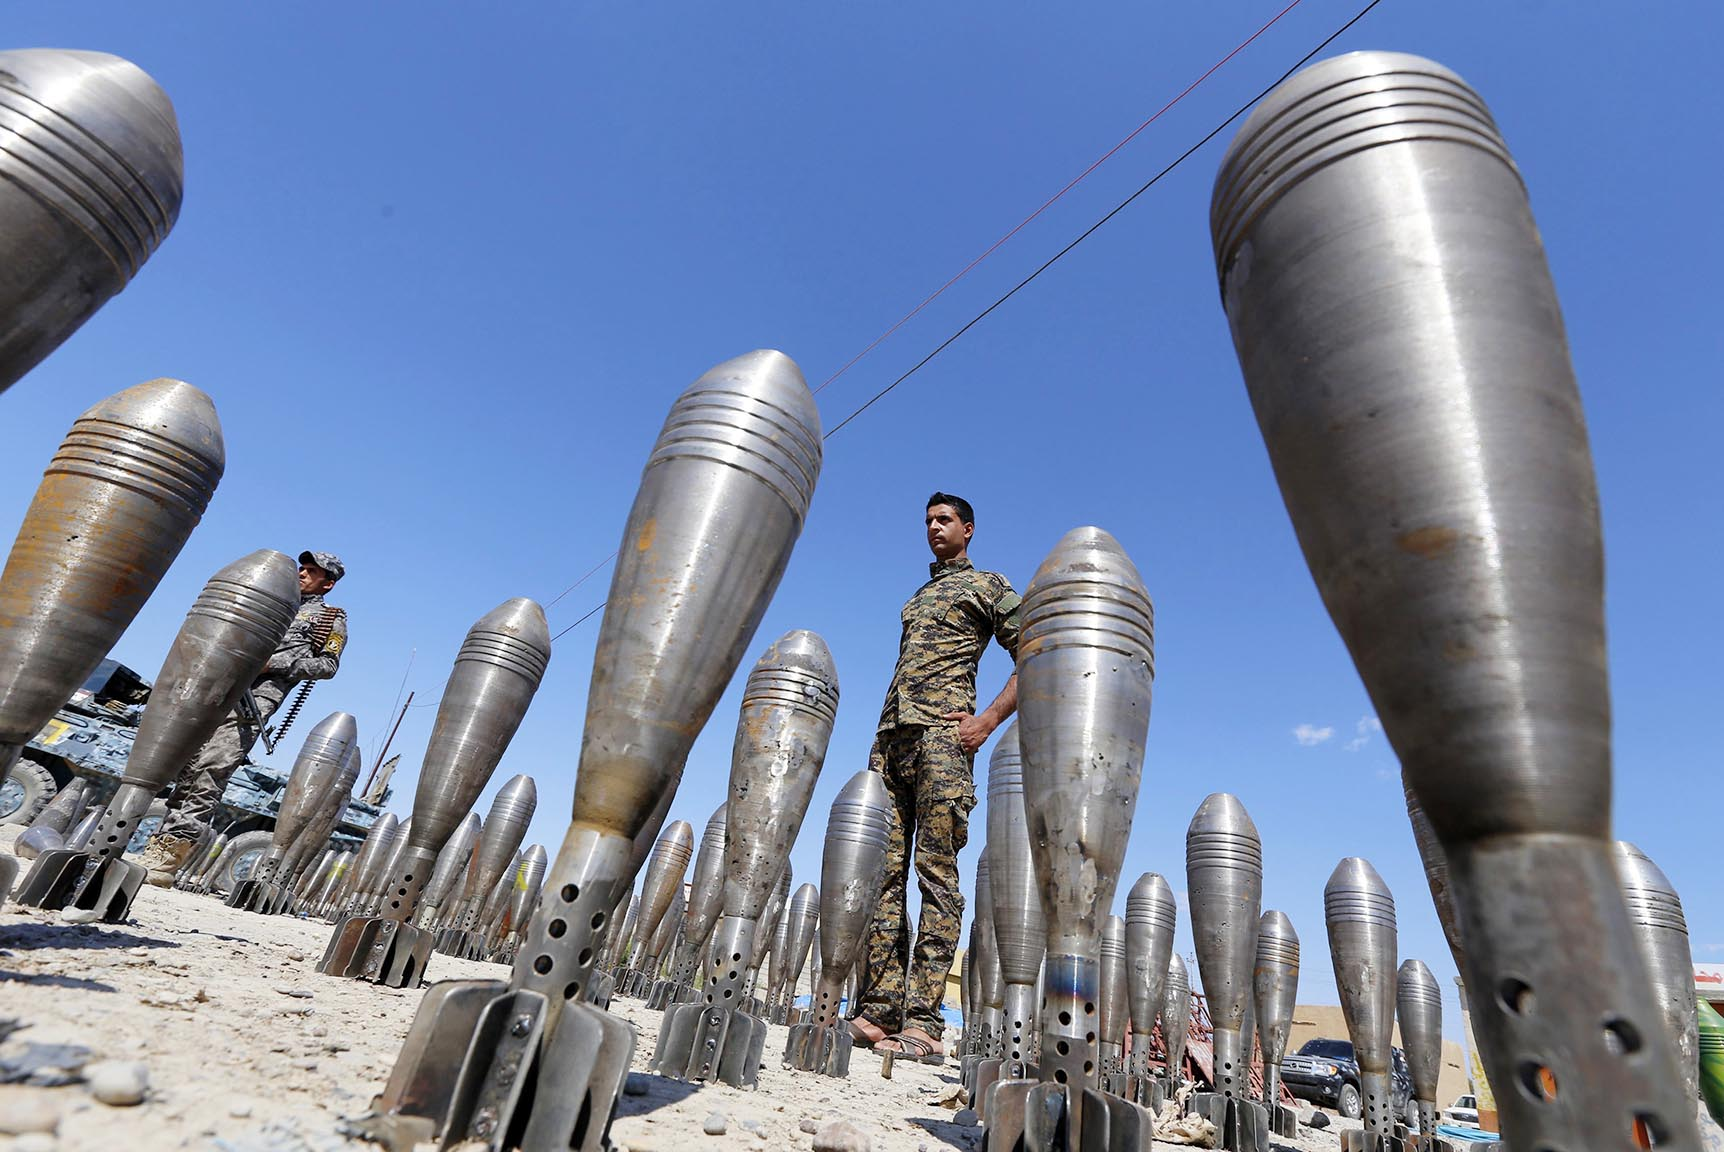 A member of the Iraqi security forces stands between Islamic State ammunition being displayed in al-Alam Salahuddin province